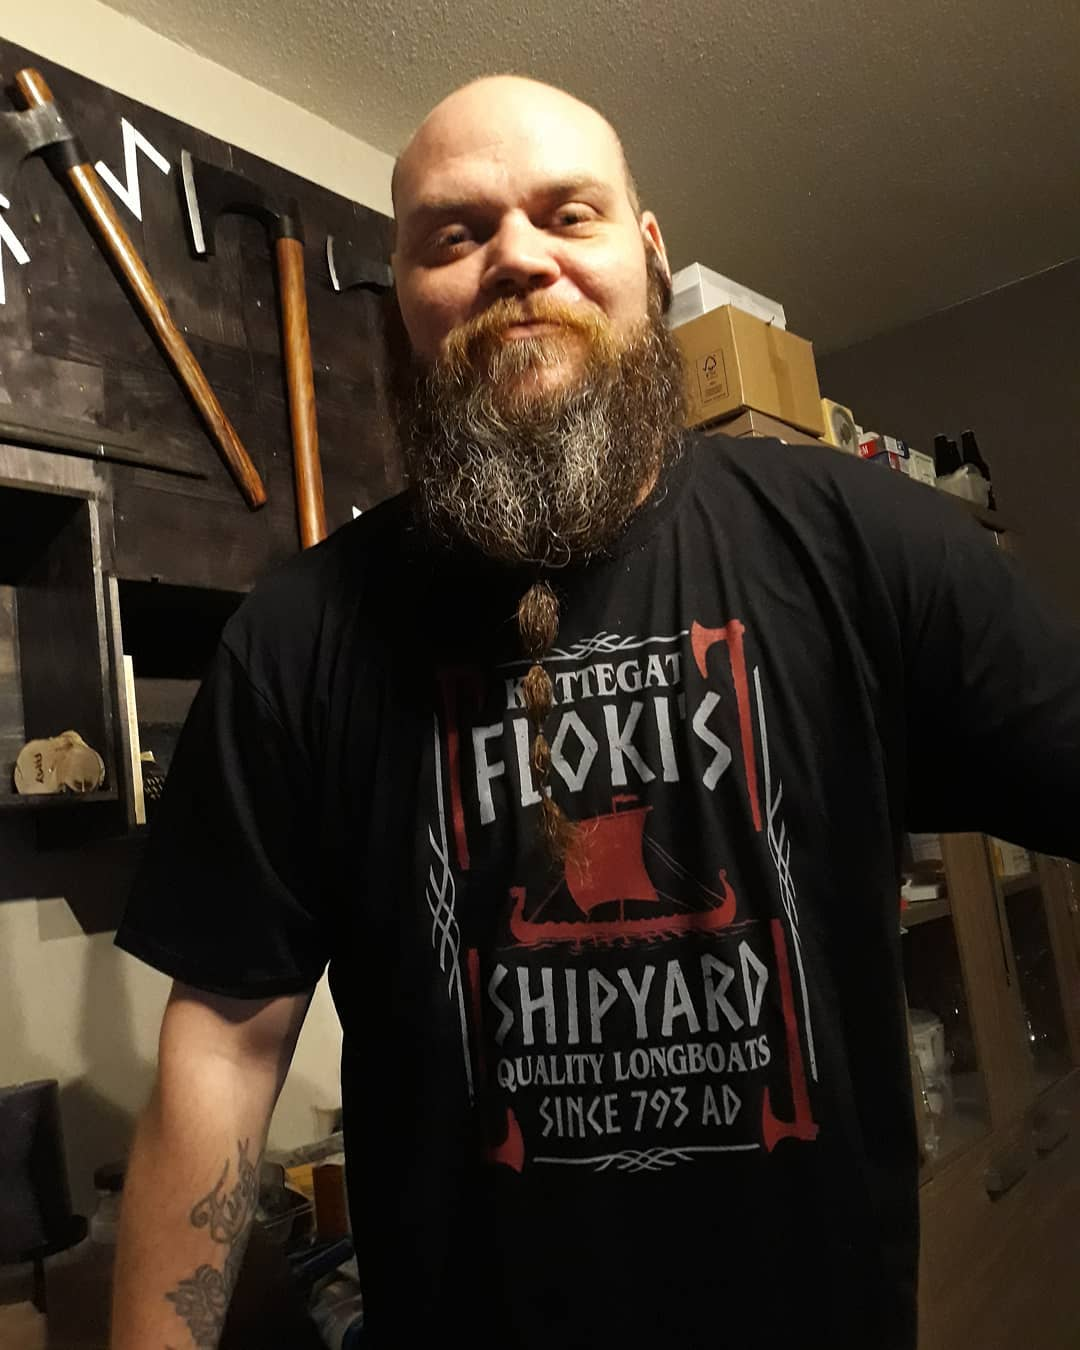 Kattegat Floki's Shipyard Quality Longboats 793 AD Vikings Shirts photo review